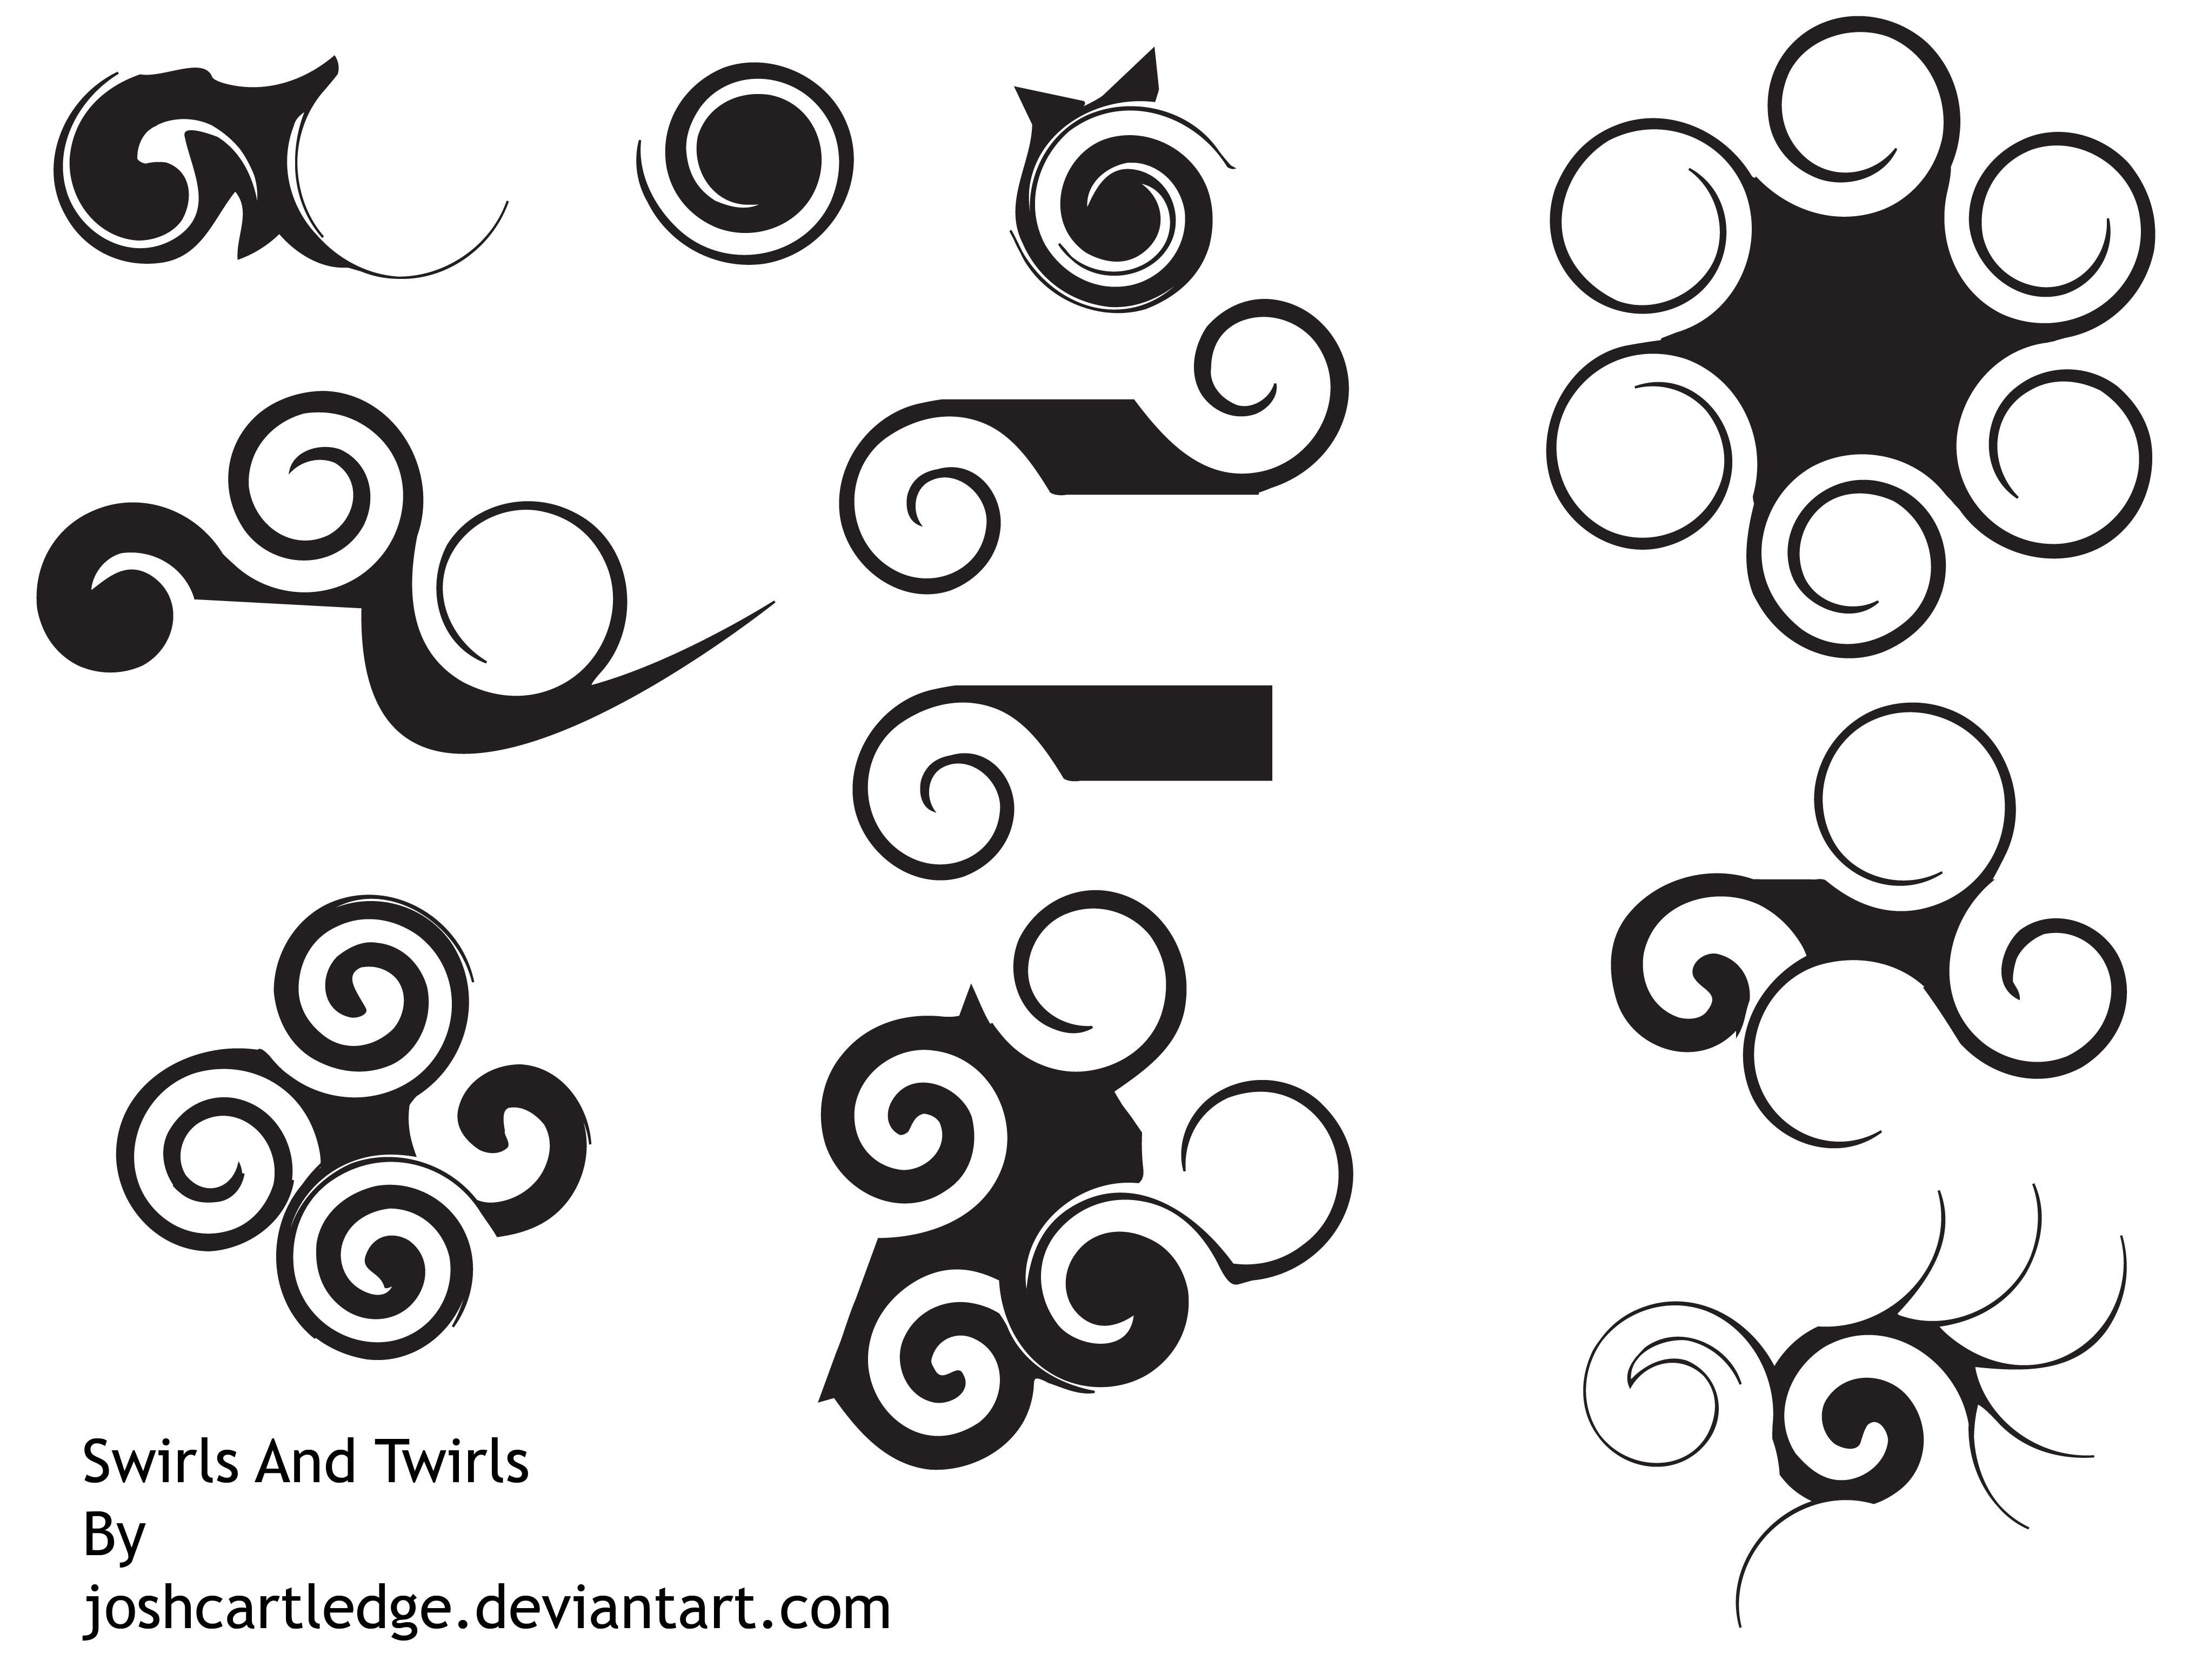 Swirls And Twirls Brushes by joshcartledge